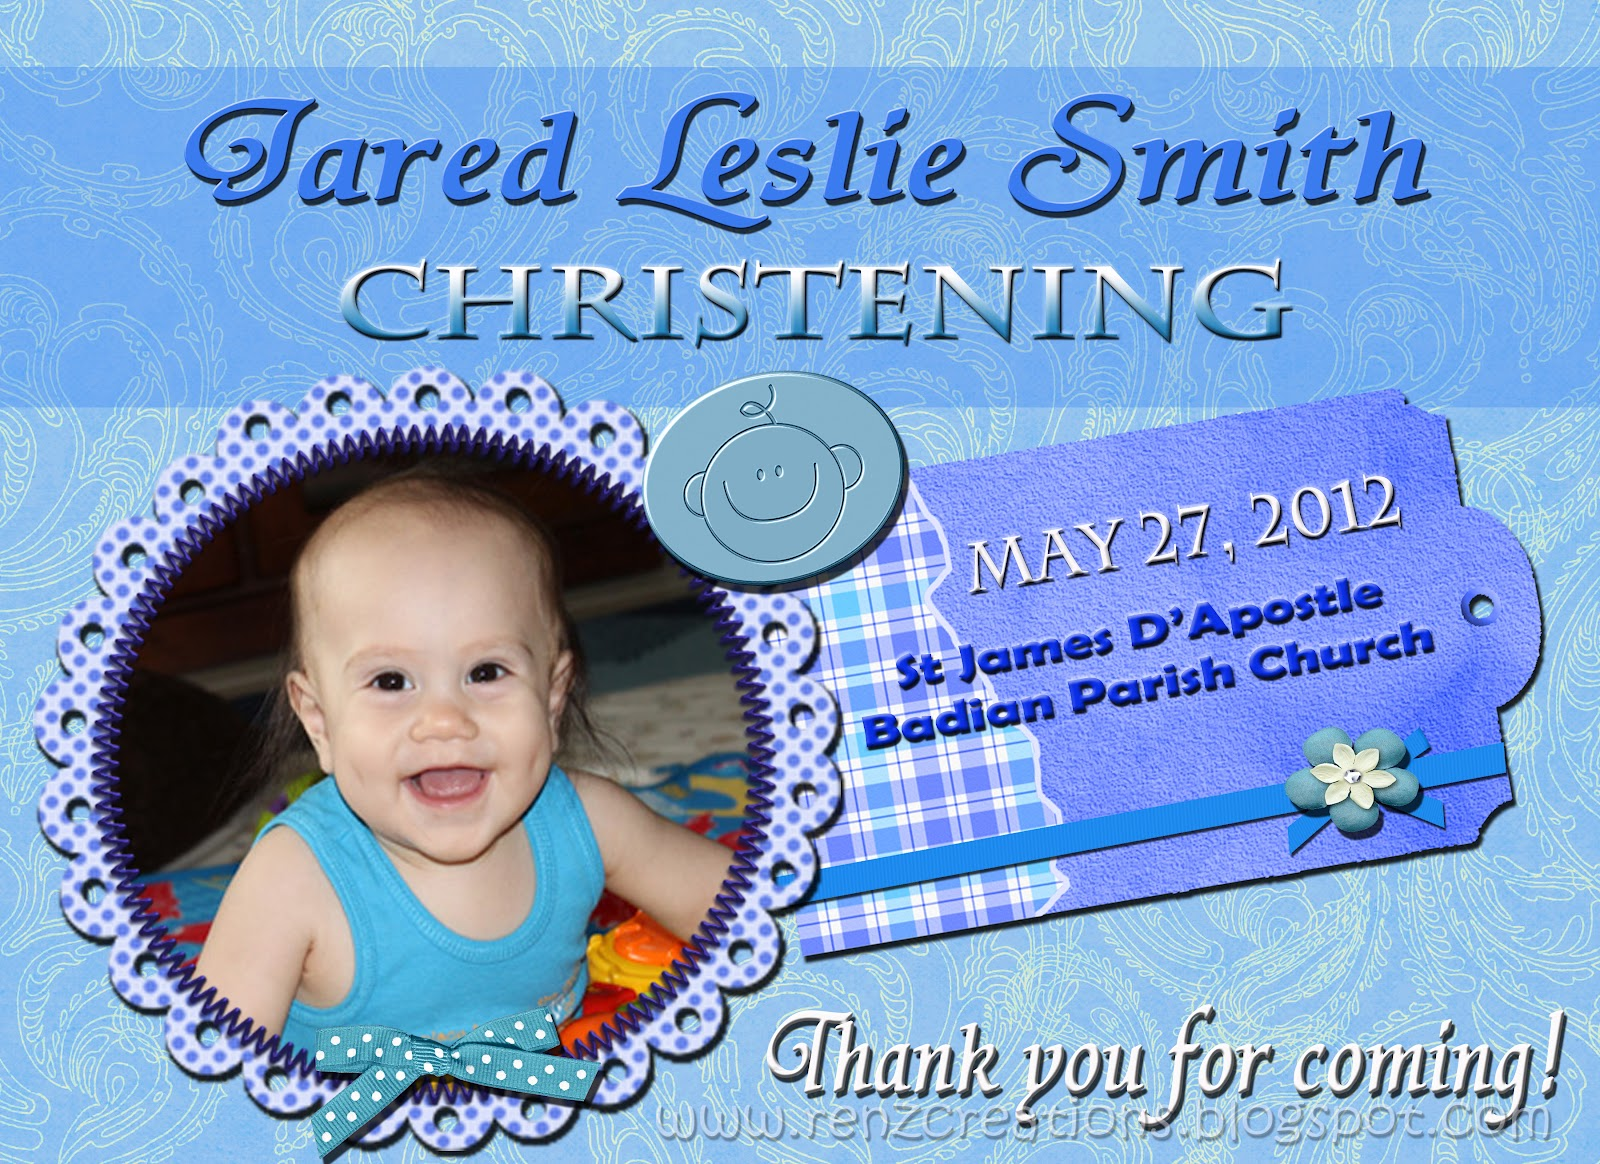 Renz Creations Invitations And Giveaways Jared Leslies Christening Giveaways